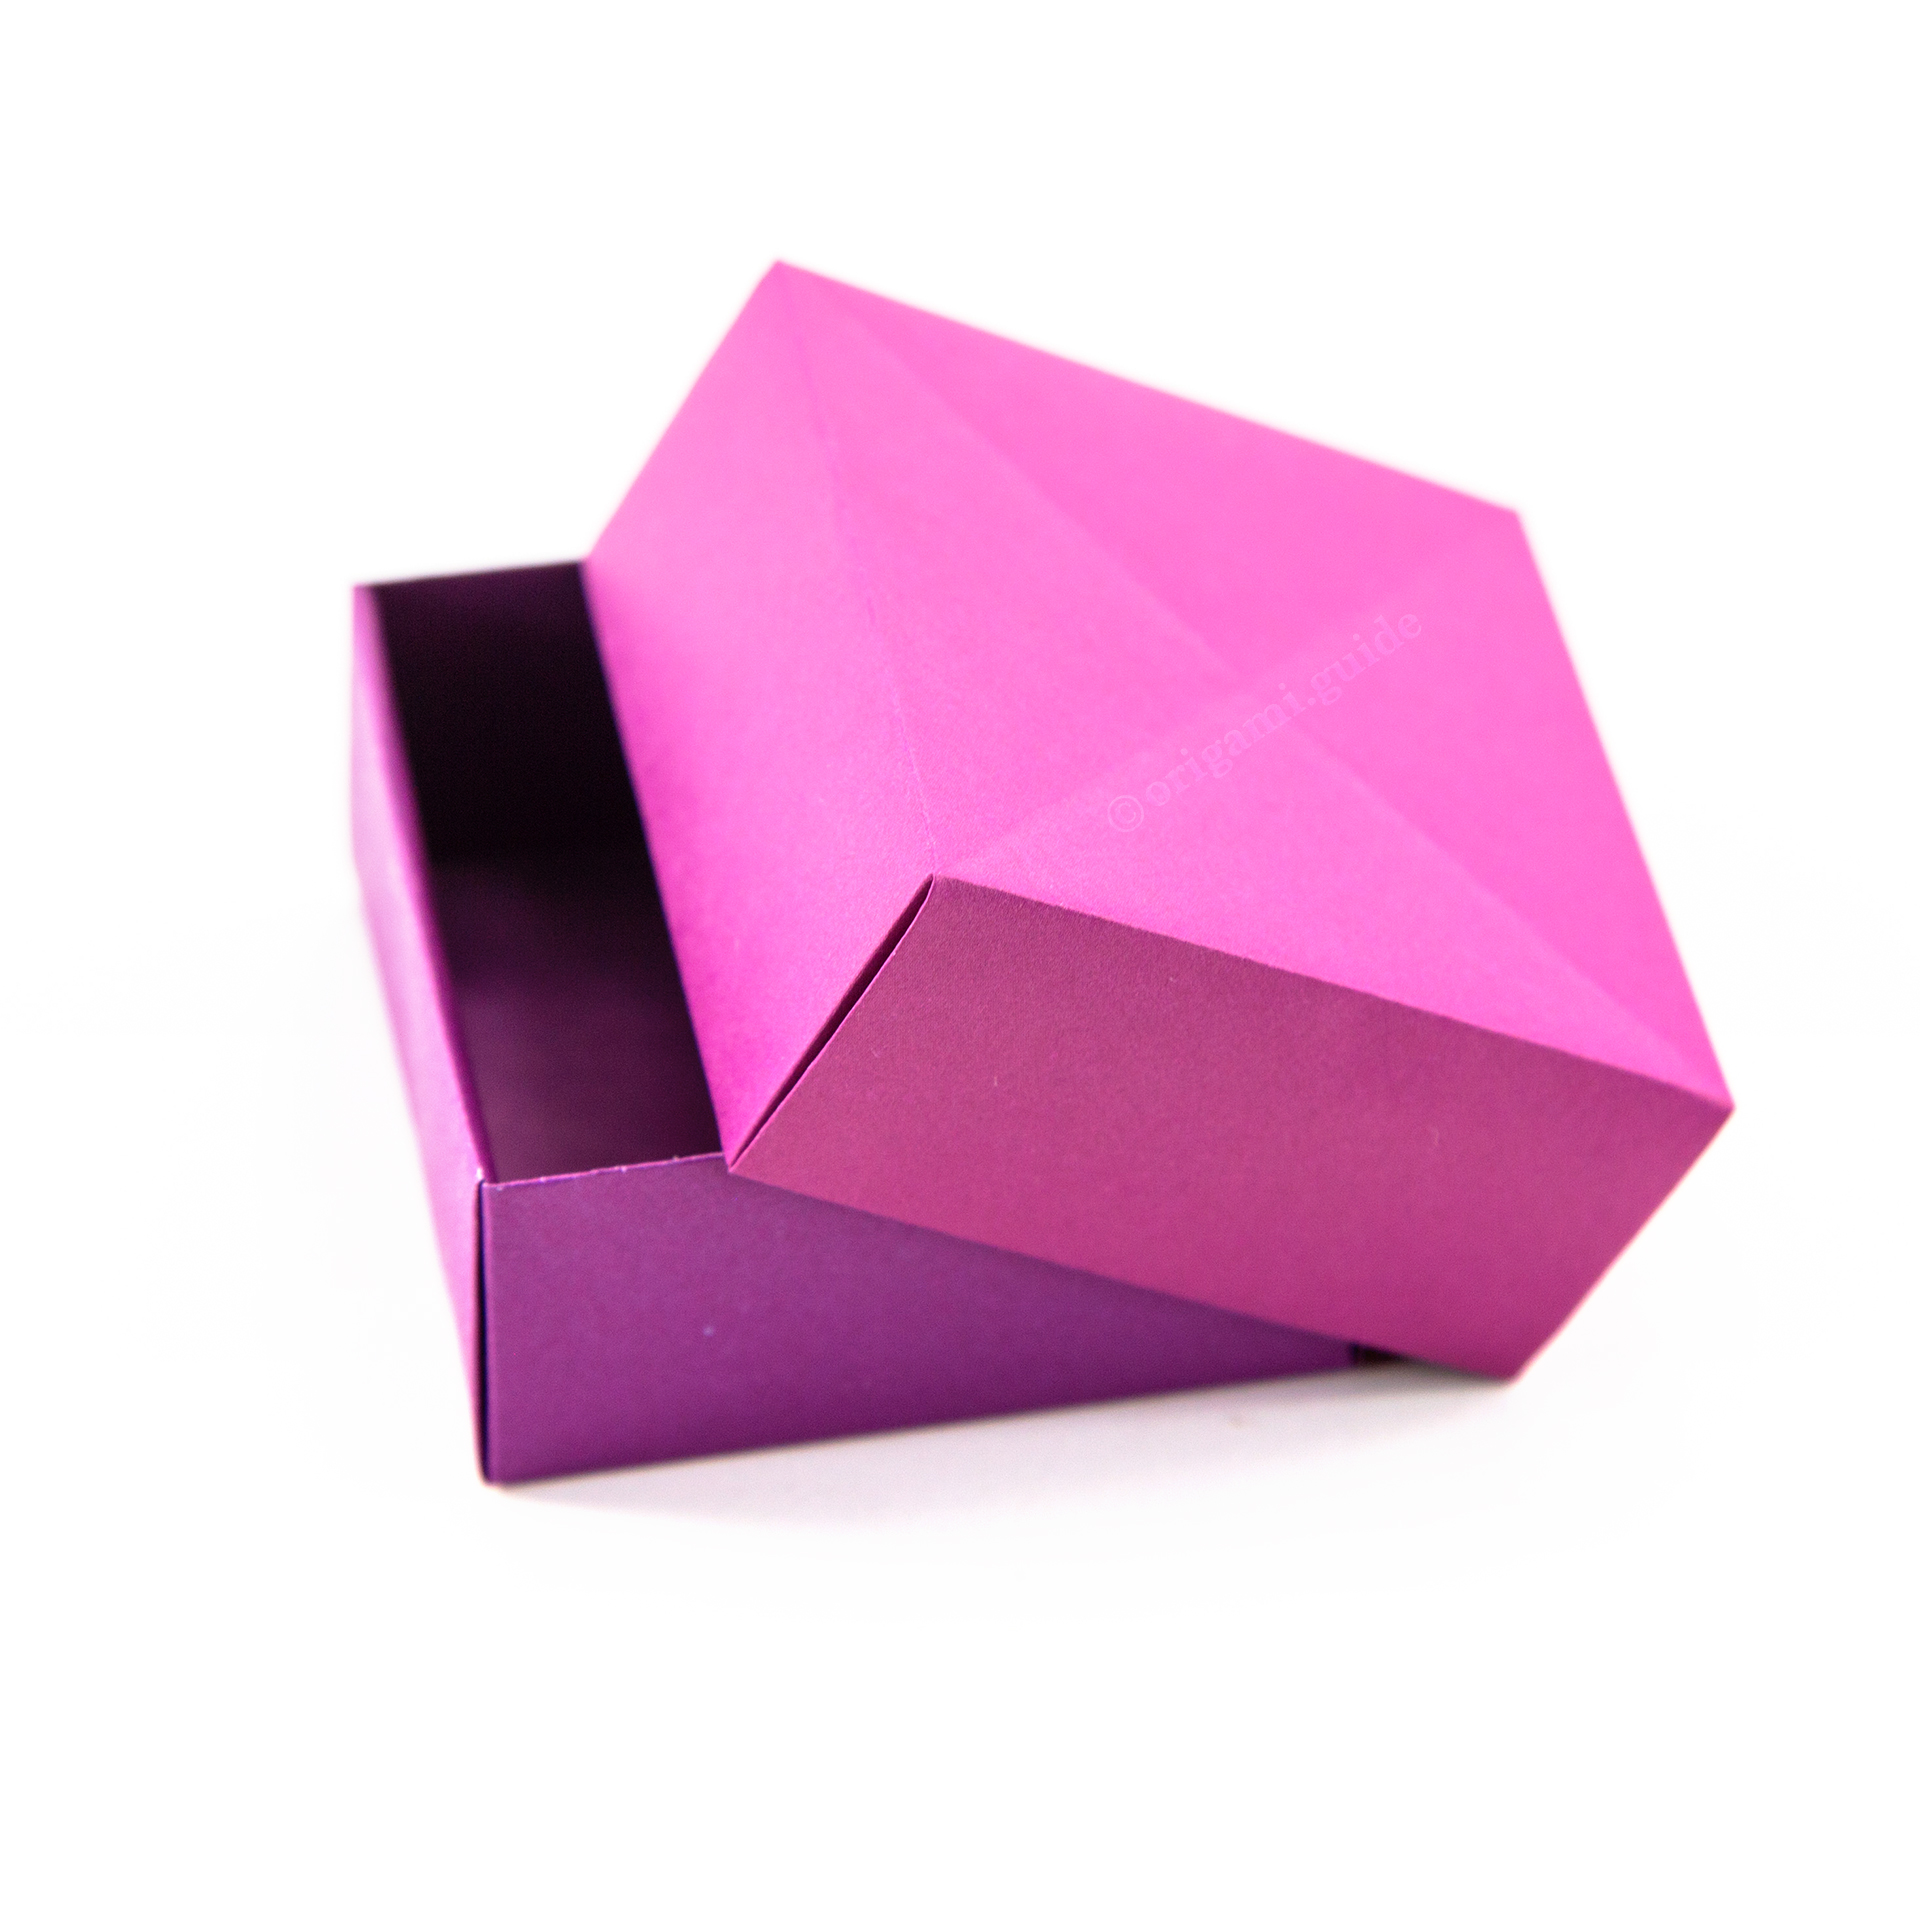 Origami octagonal Box With Lid instructions | Box + Lid | Origami ... | 1920x1920